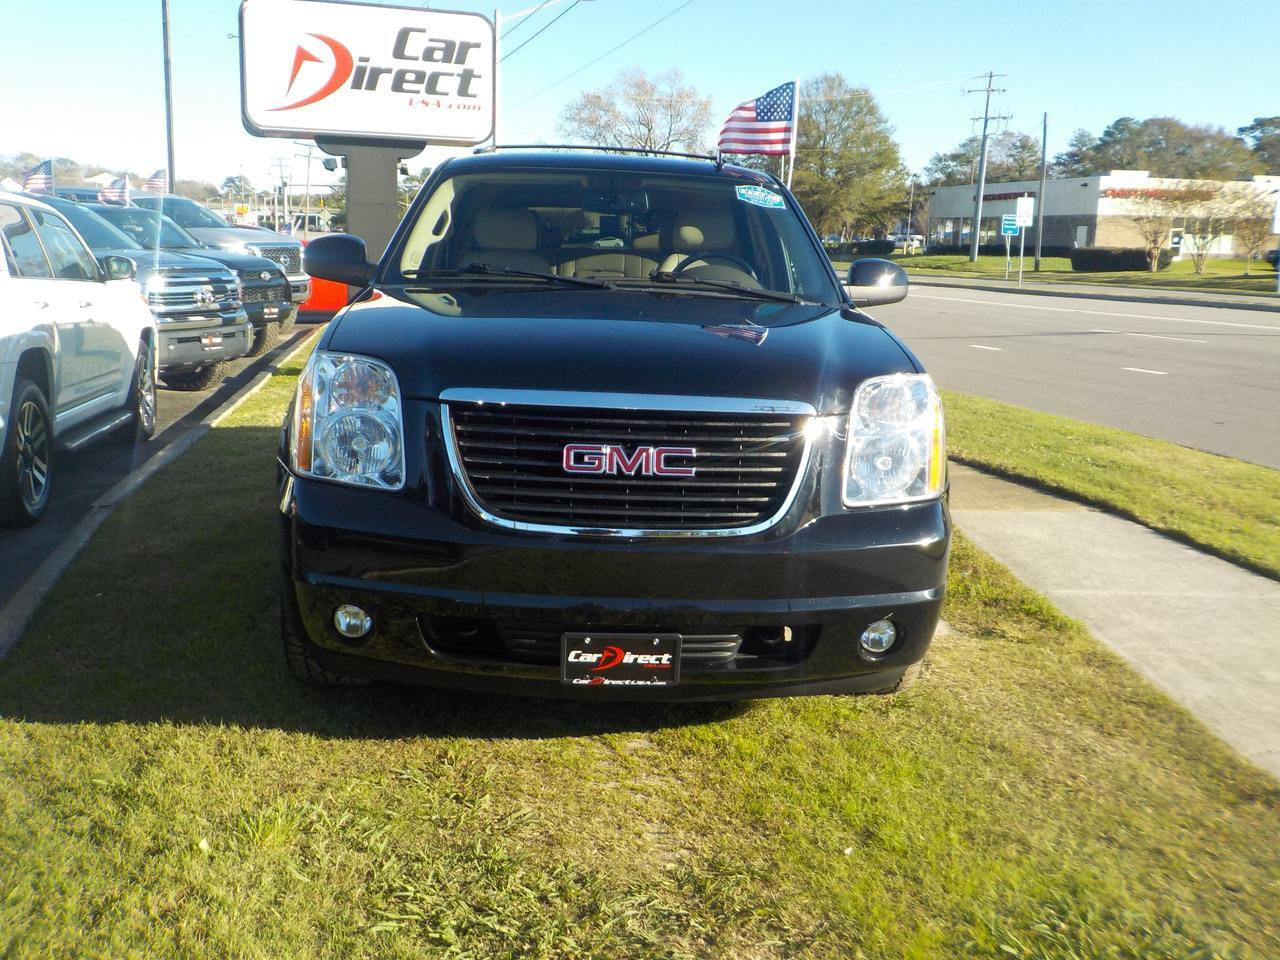 2014 GMC YUKON SLT 4X4, HEATED + COOLED SEATS, BOSE SOUND, TOW PKG, REMOTE START, BACKUP CAM, POWER LIFTGATE! Virginia Beach VA